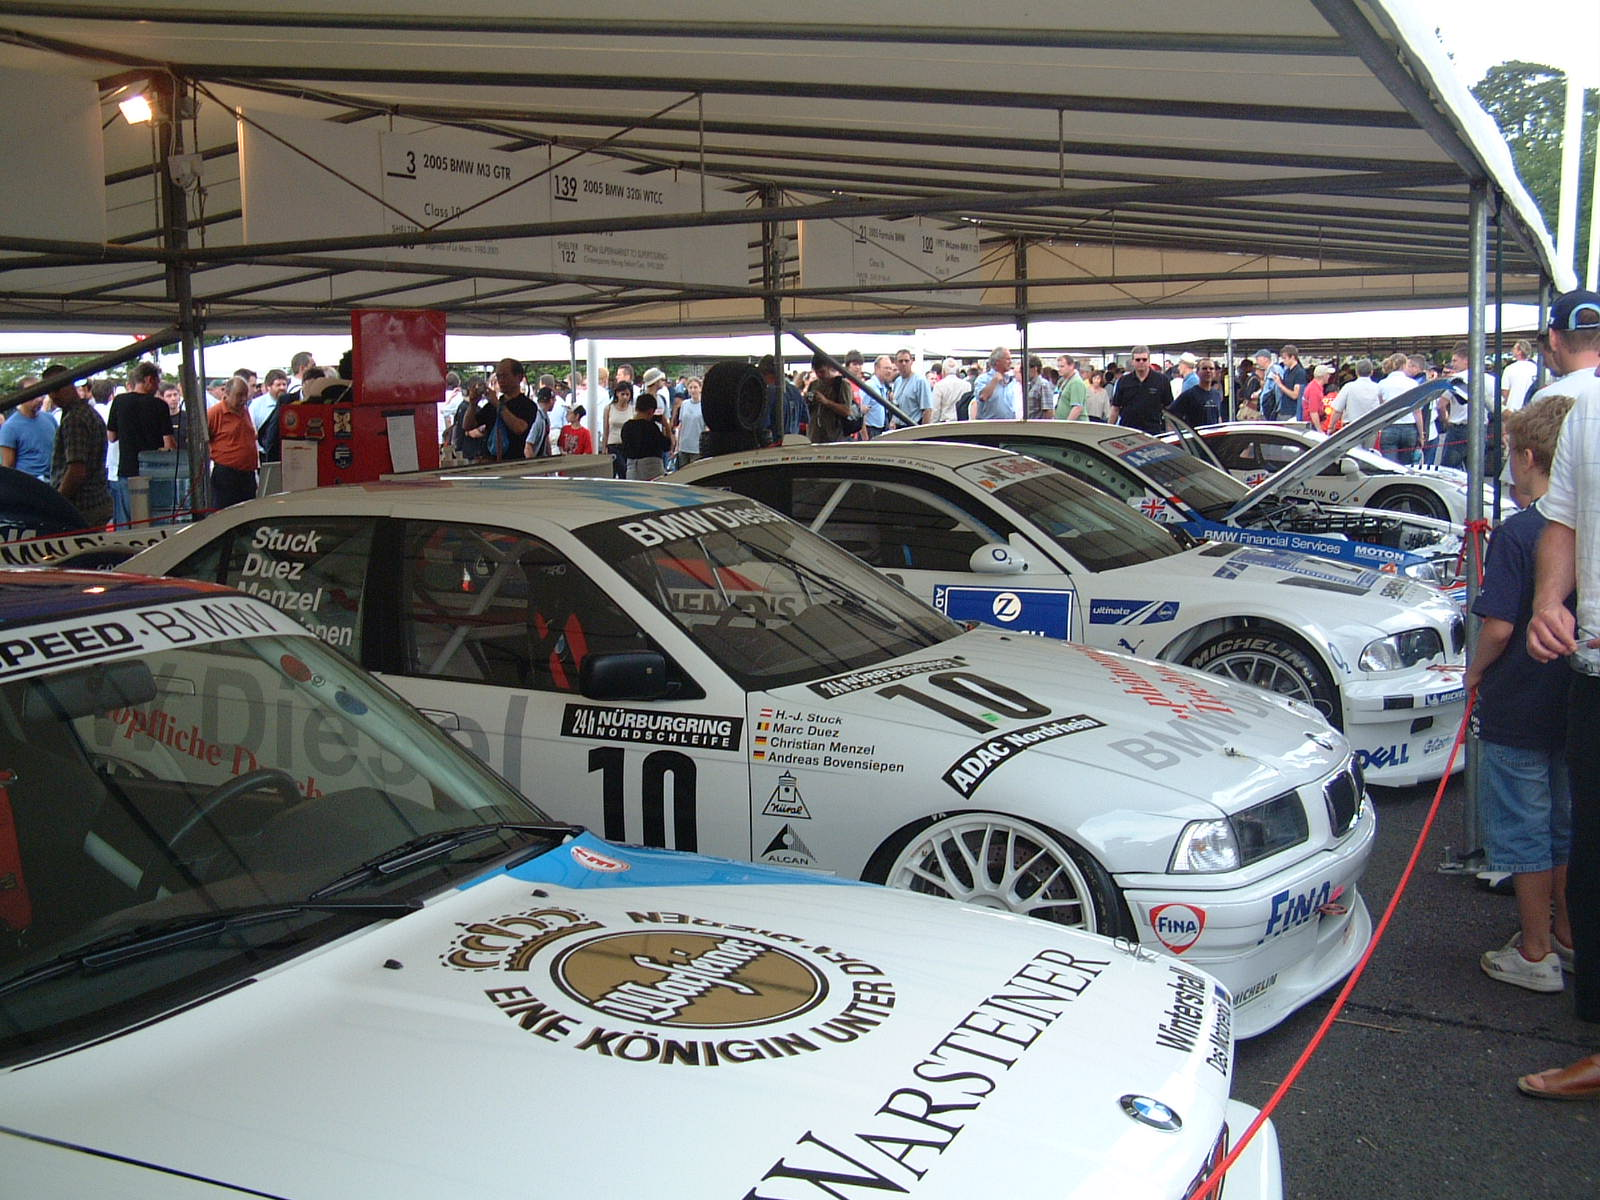 Goodwood Festival of Speed BMW Touring Cars